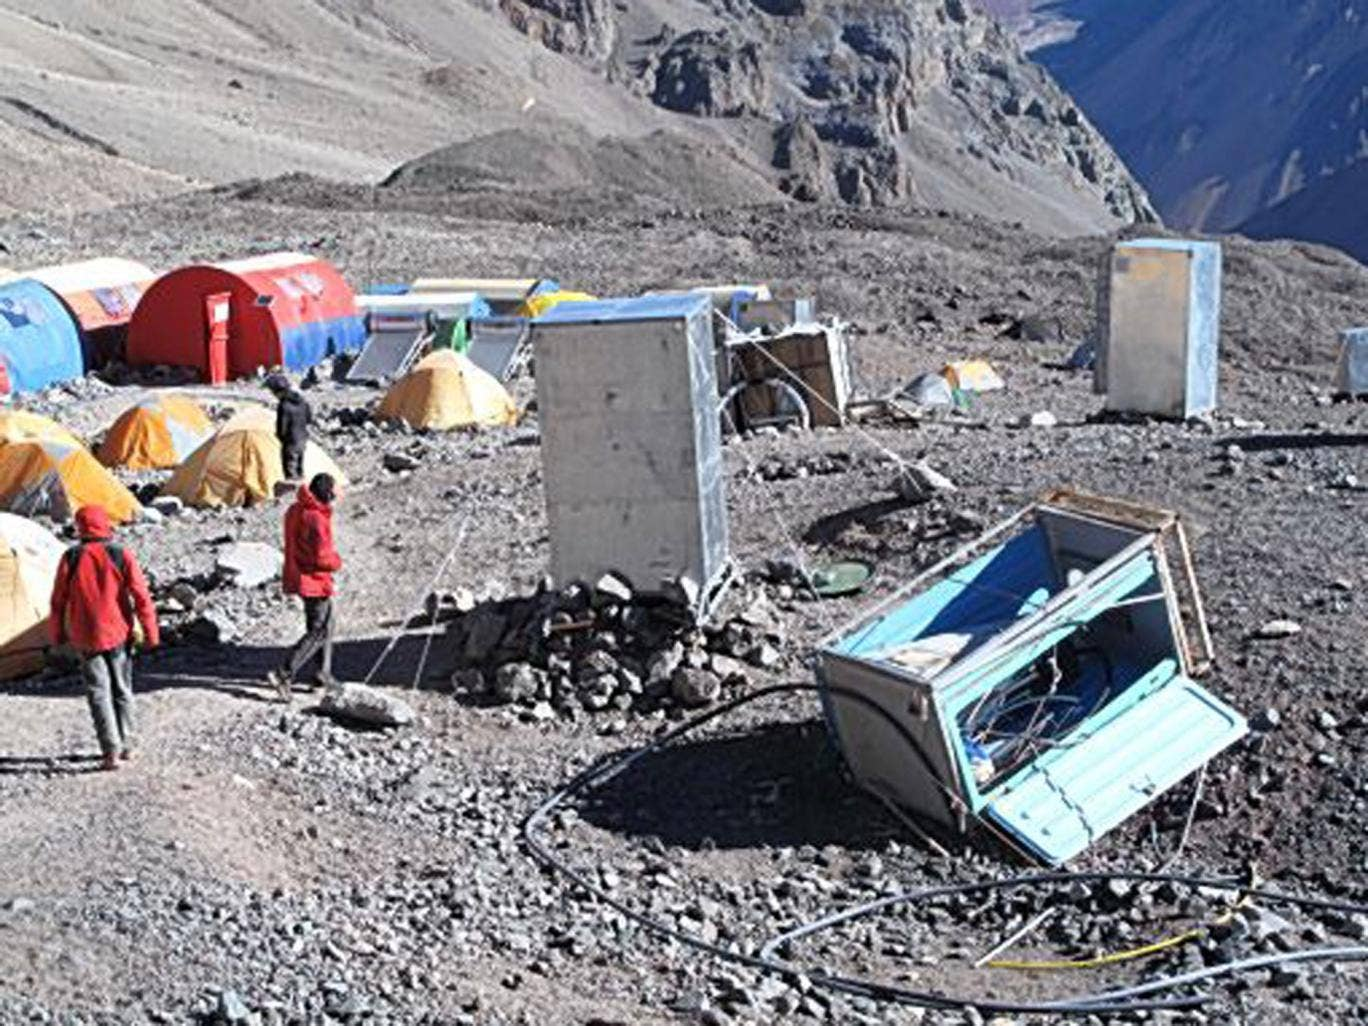 Touch base: the portable loos on Aconcagua